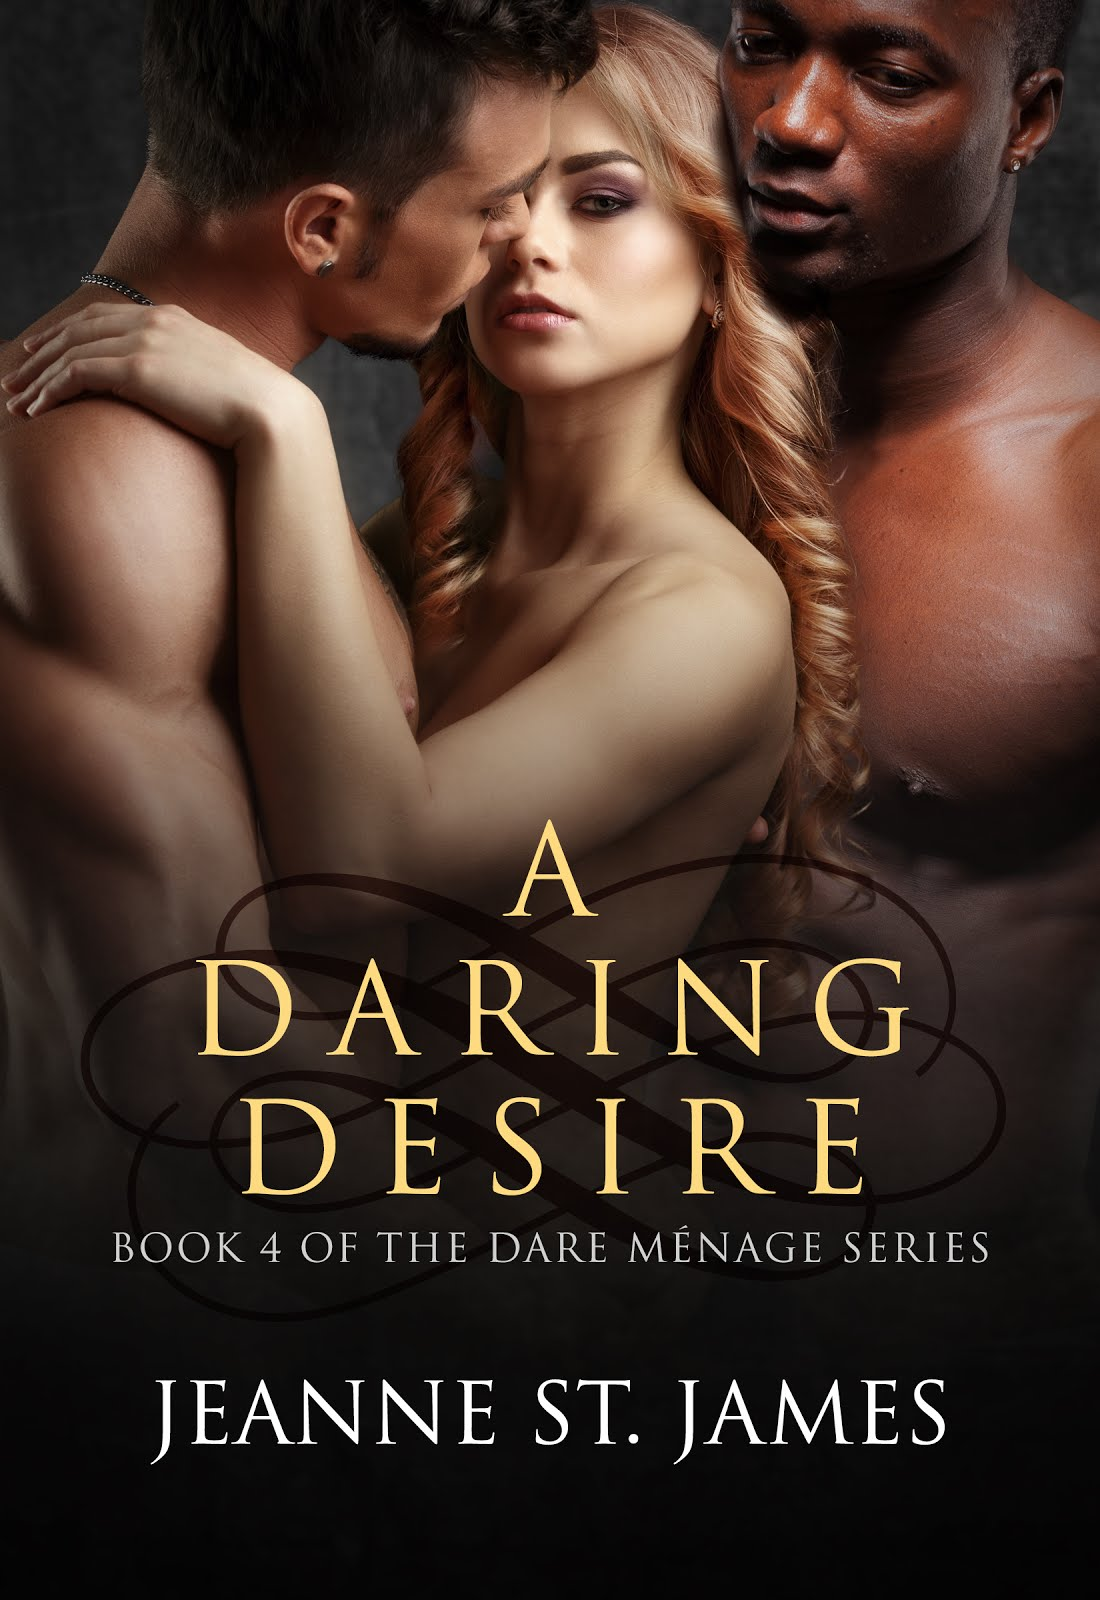 A Daring Desire (The Dare Menage Series, bk 4)